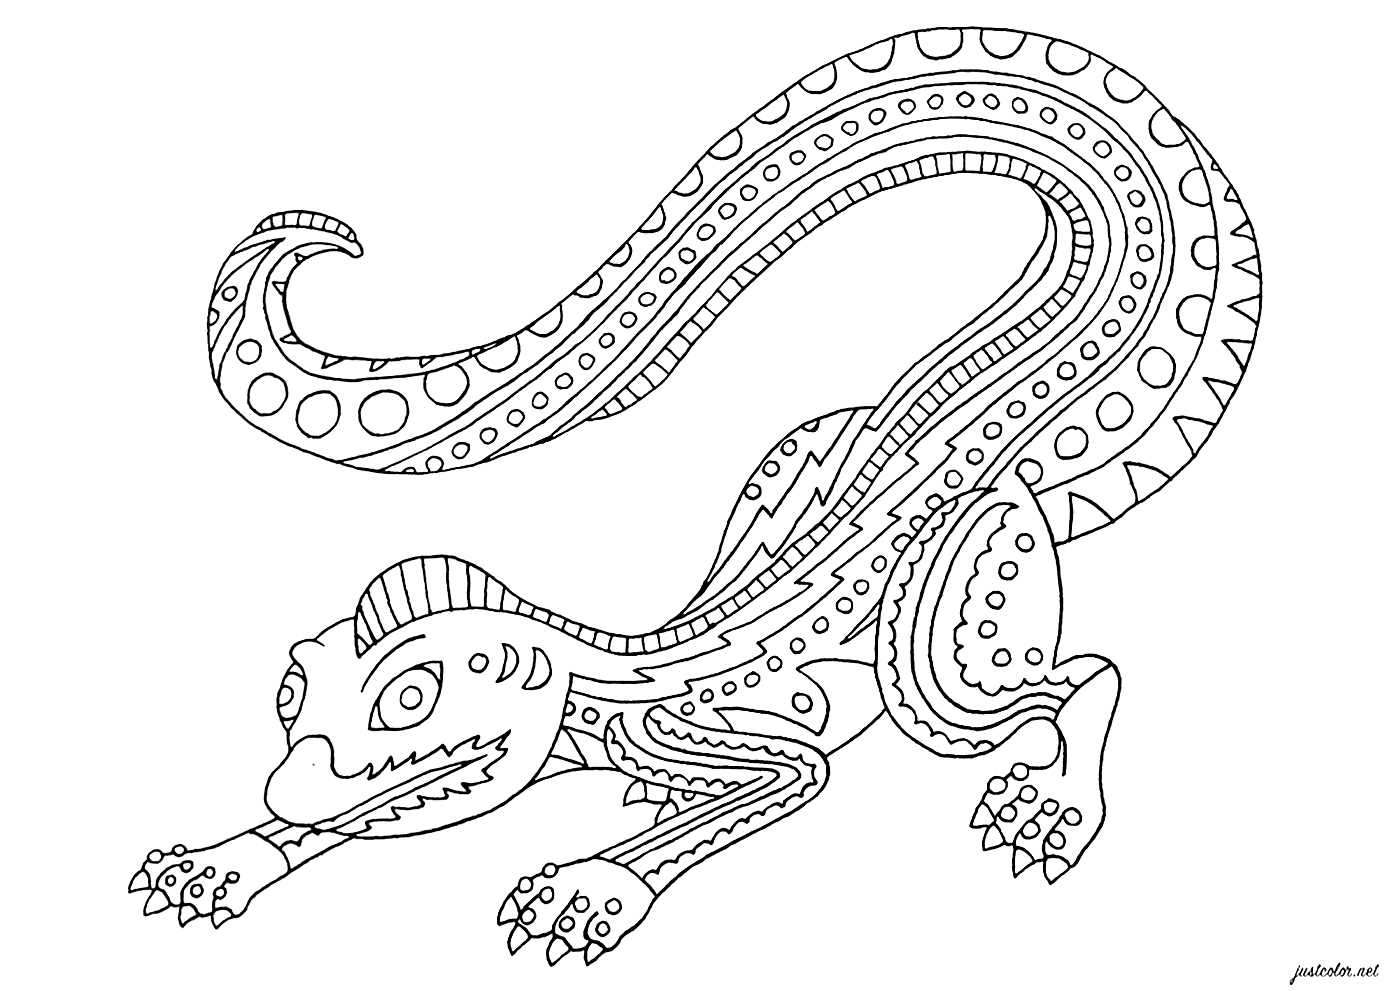 Majestic lizard inspired by Alebrijes sculptures (Mexican folk art sculptures)